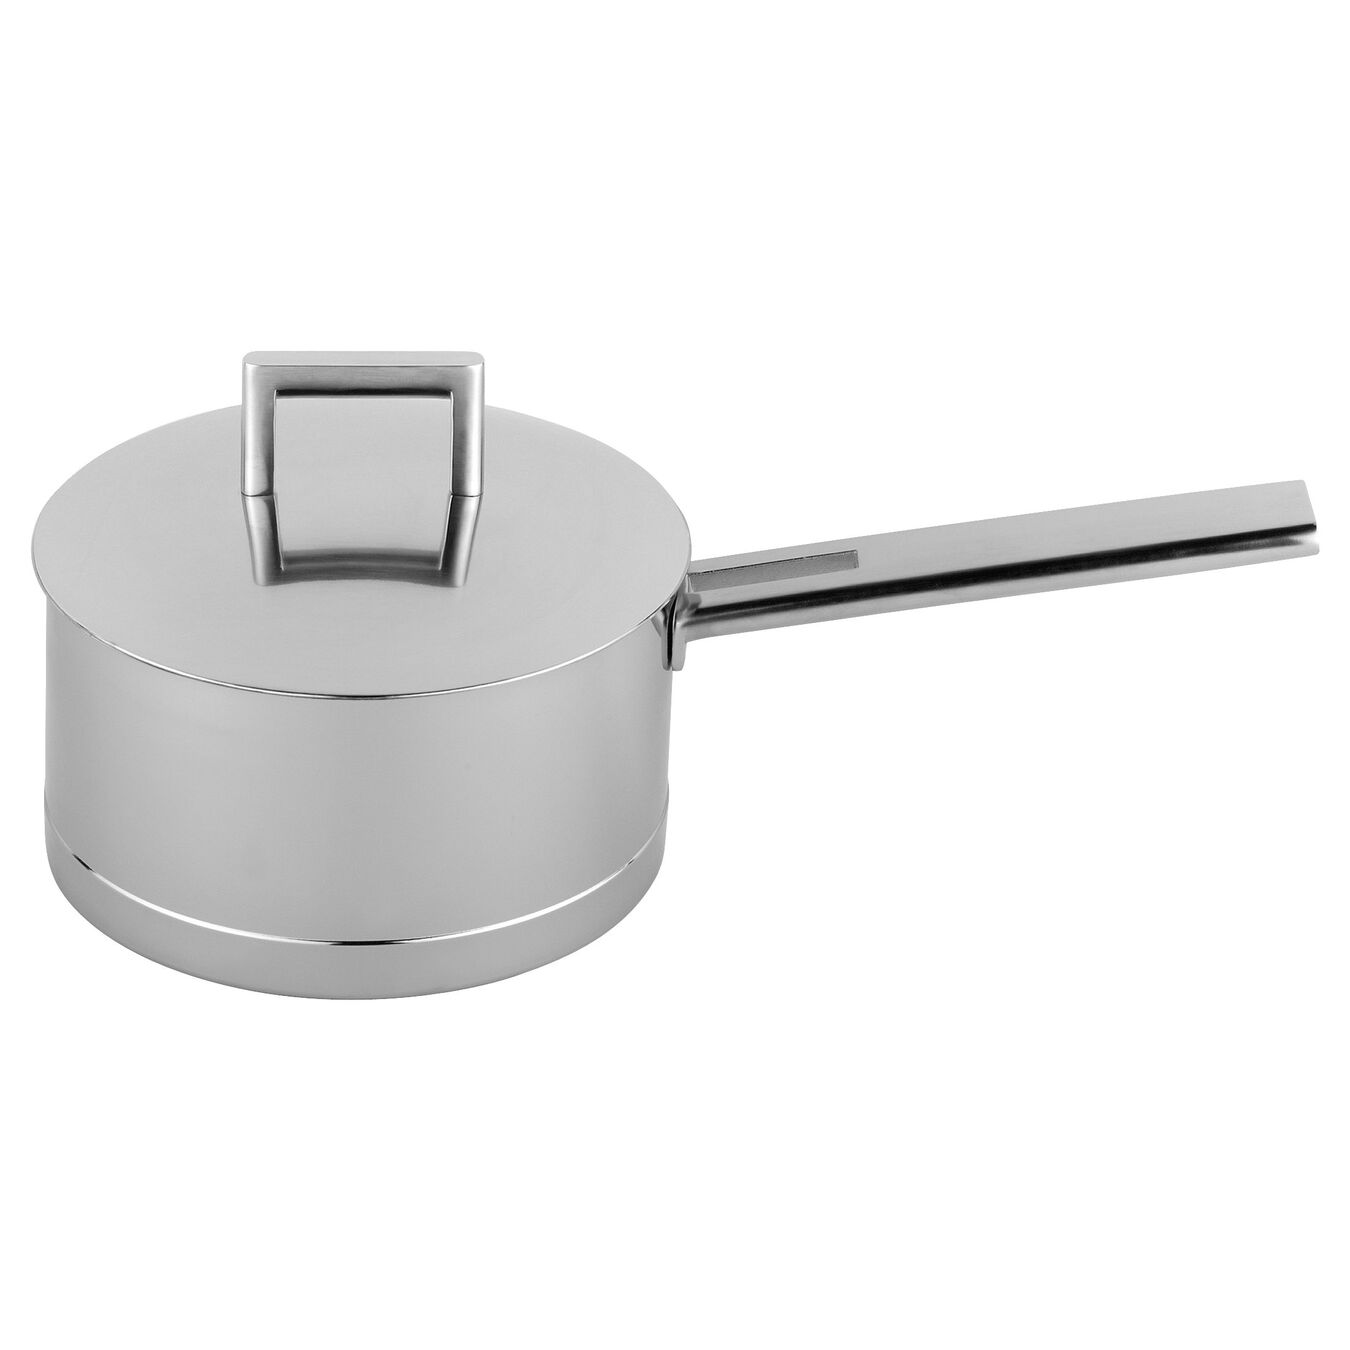 3.25 qt Sauce pan with lid, 18/10 Stainless Steel ,,large 1